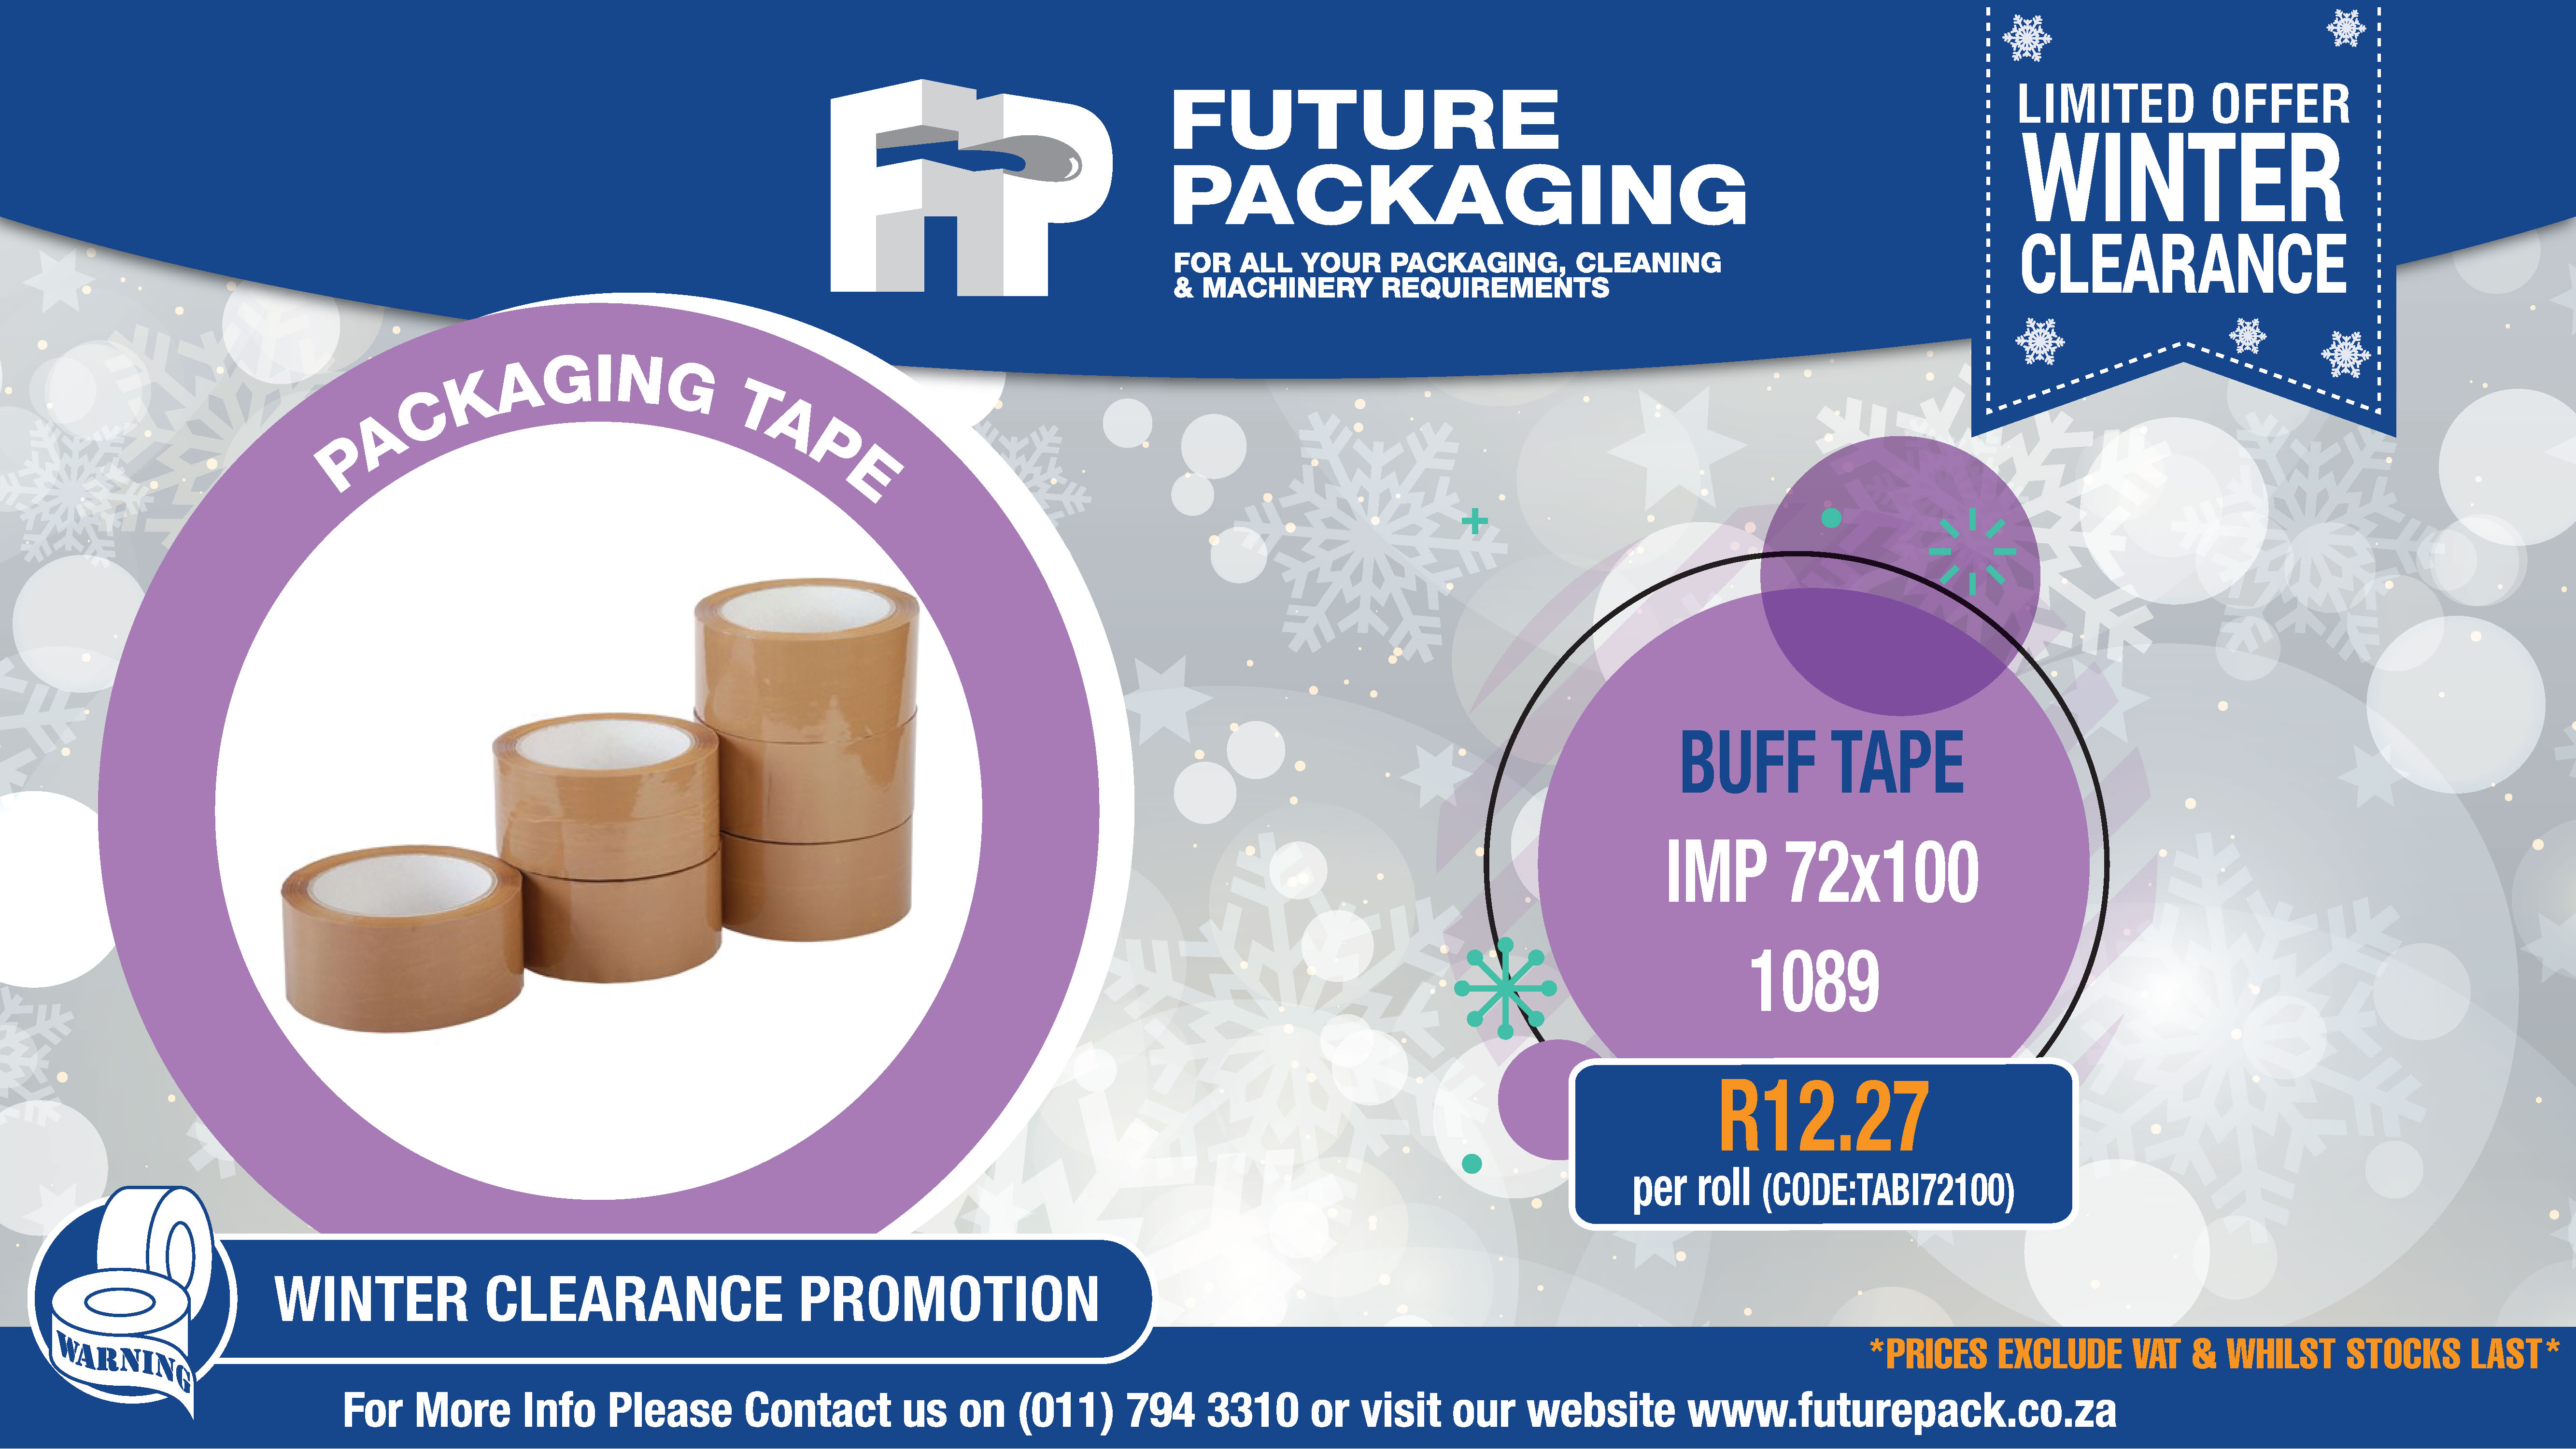 FP 1696-1 Winter clearance Packaging Tape Promo